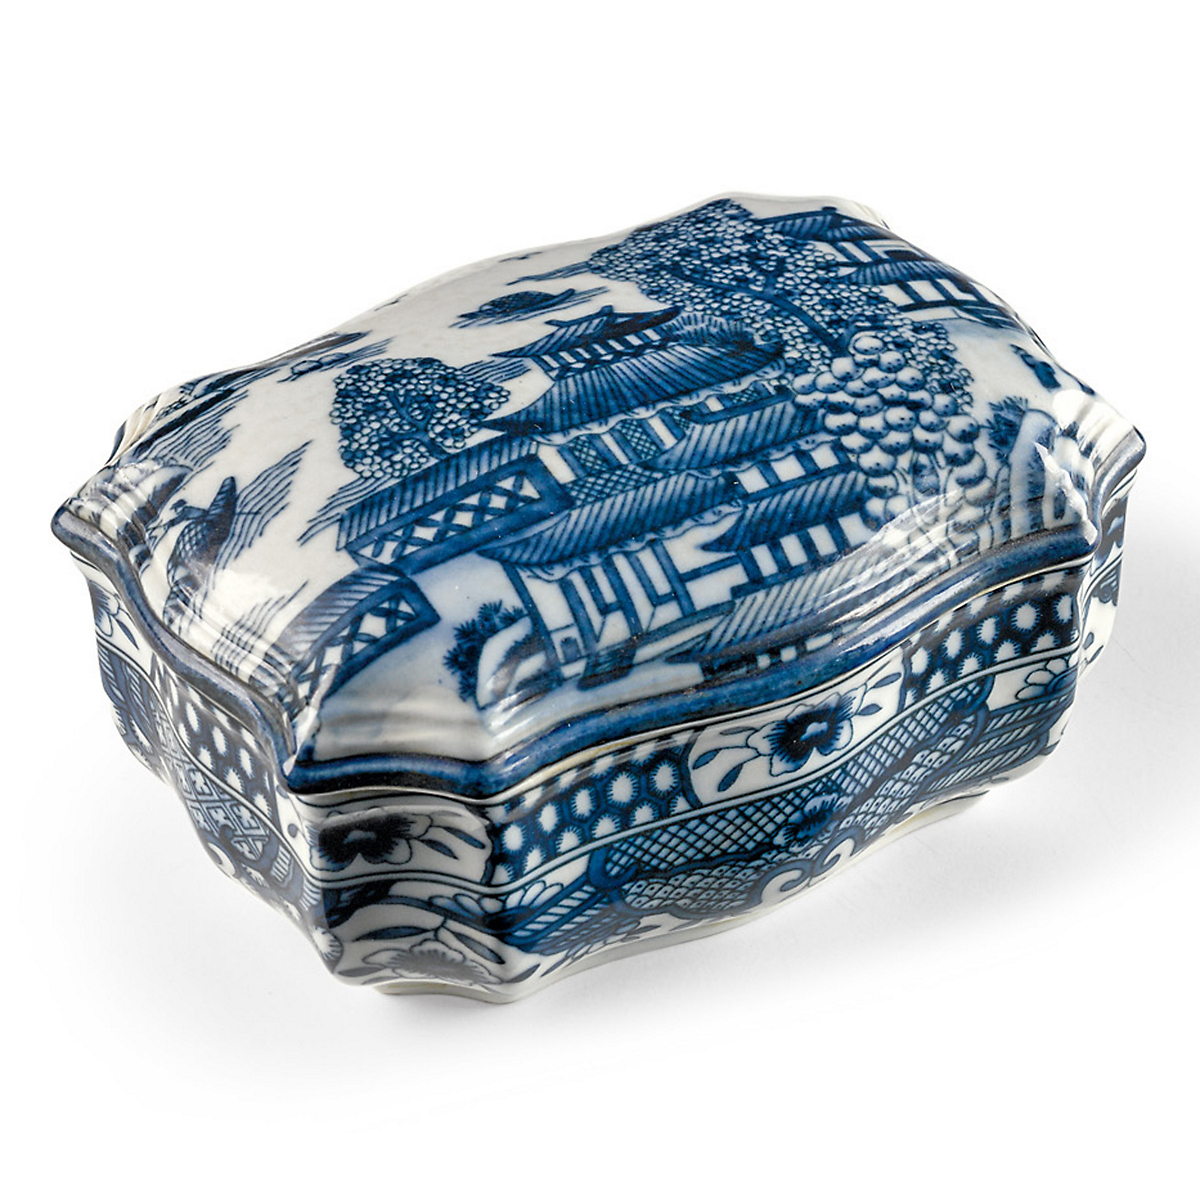 Blue Willow Porcelain Jar & Box